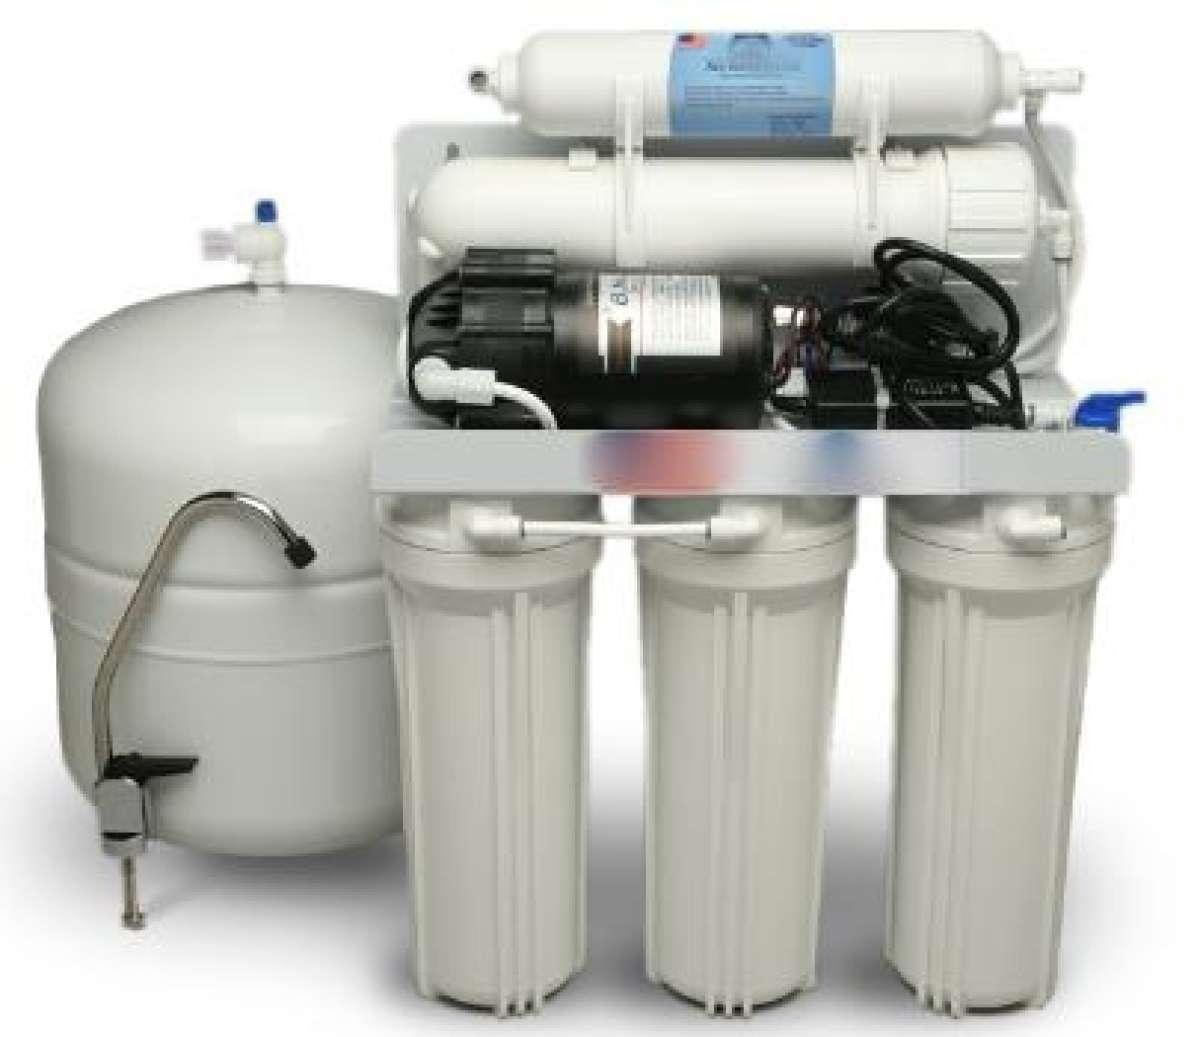 1 x Reverse Osmosis Water Purification System-5 stage (100% Clean Water  Machine)